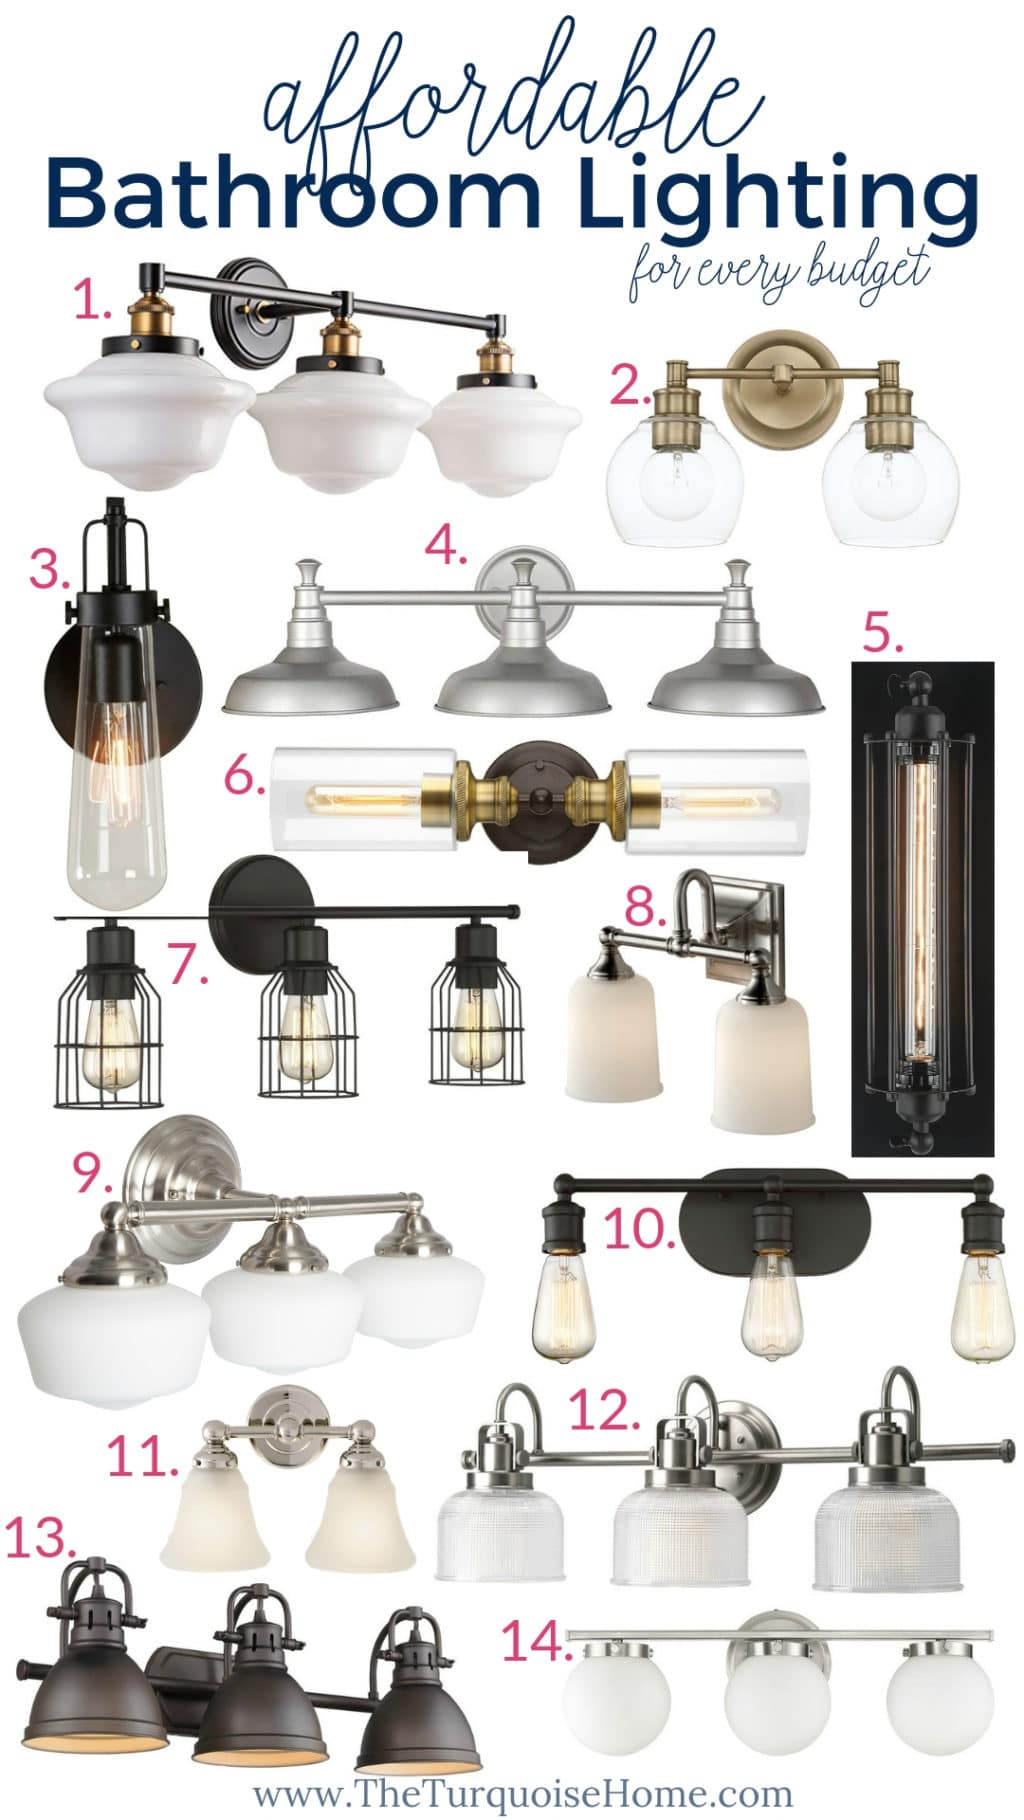 Affordable Bathroom Lighting for every budget!